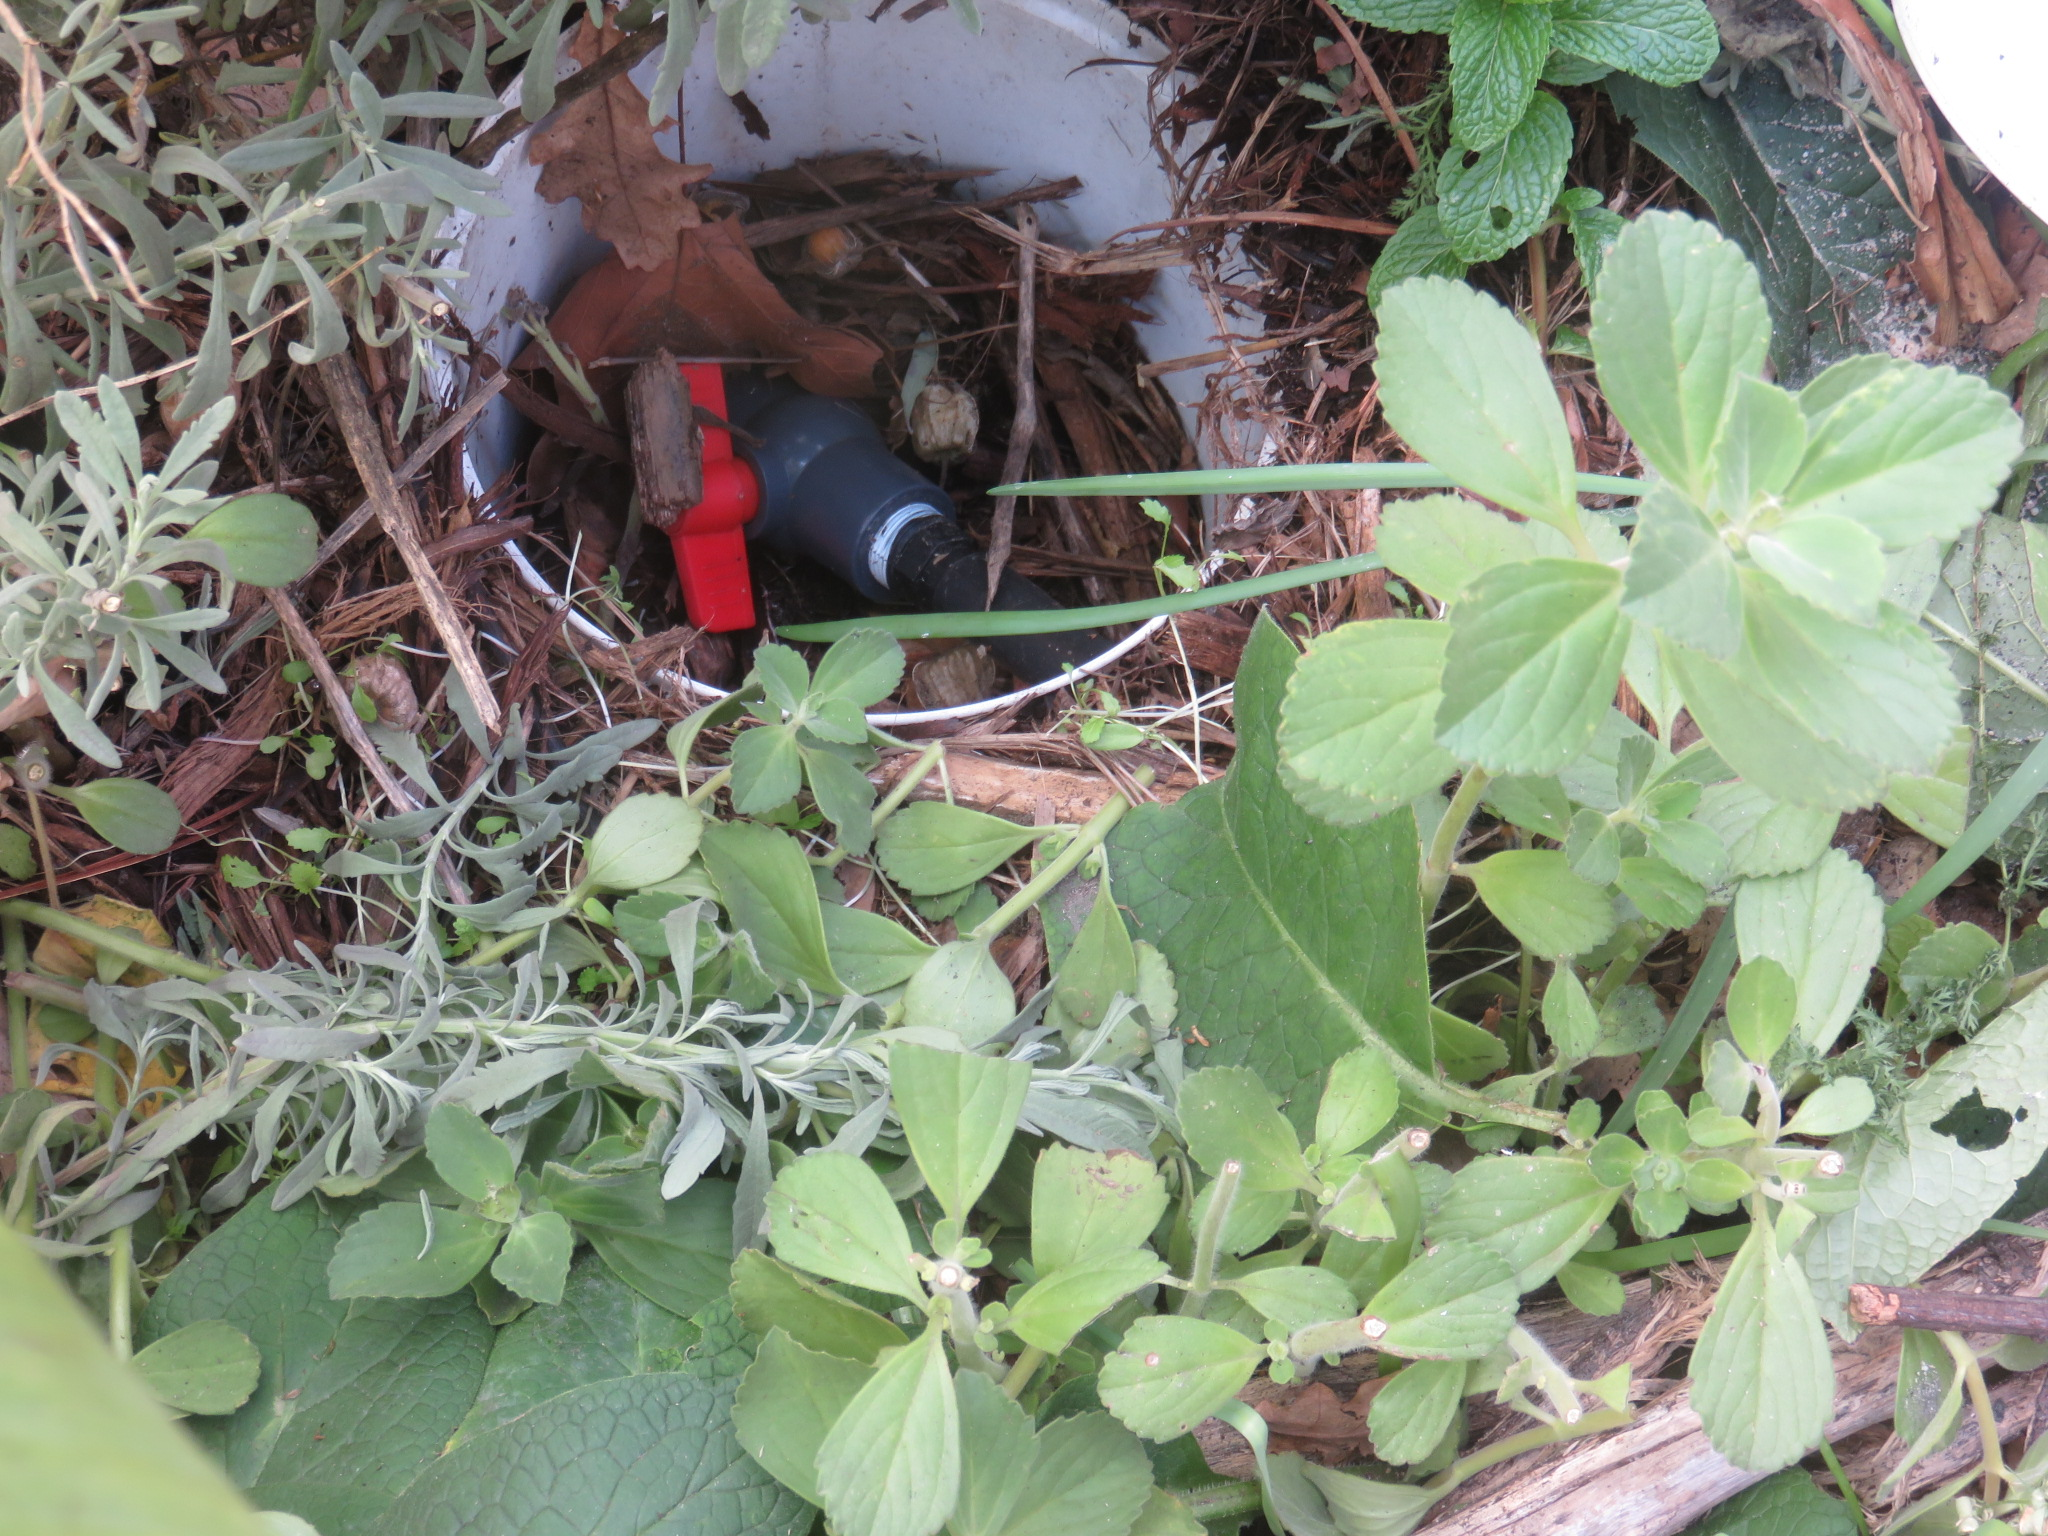 outlet valve protected by bucket buried in mulch pit